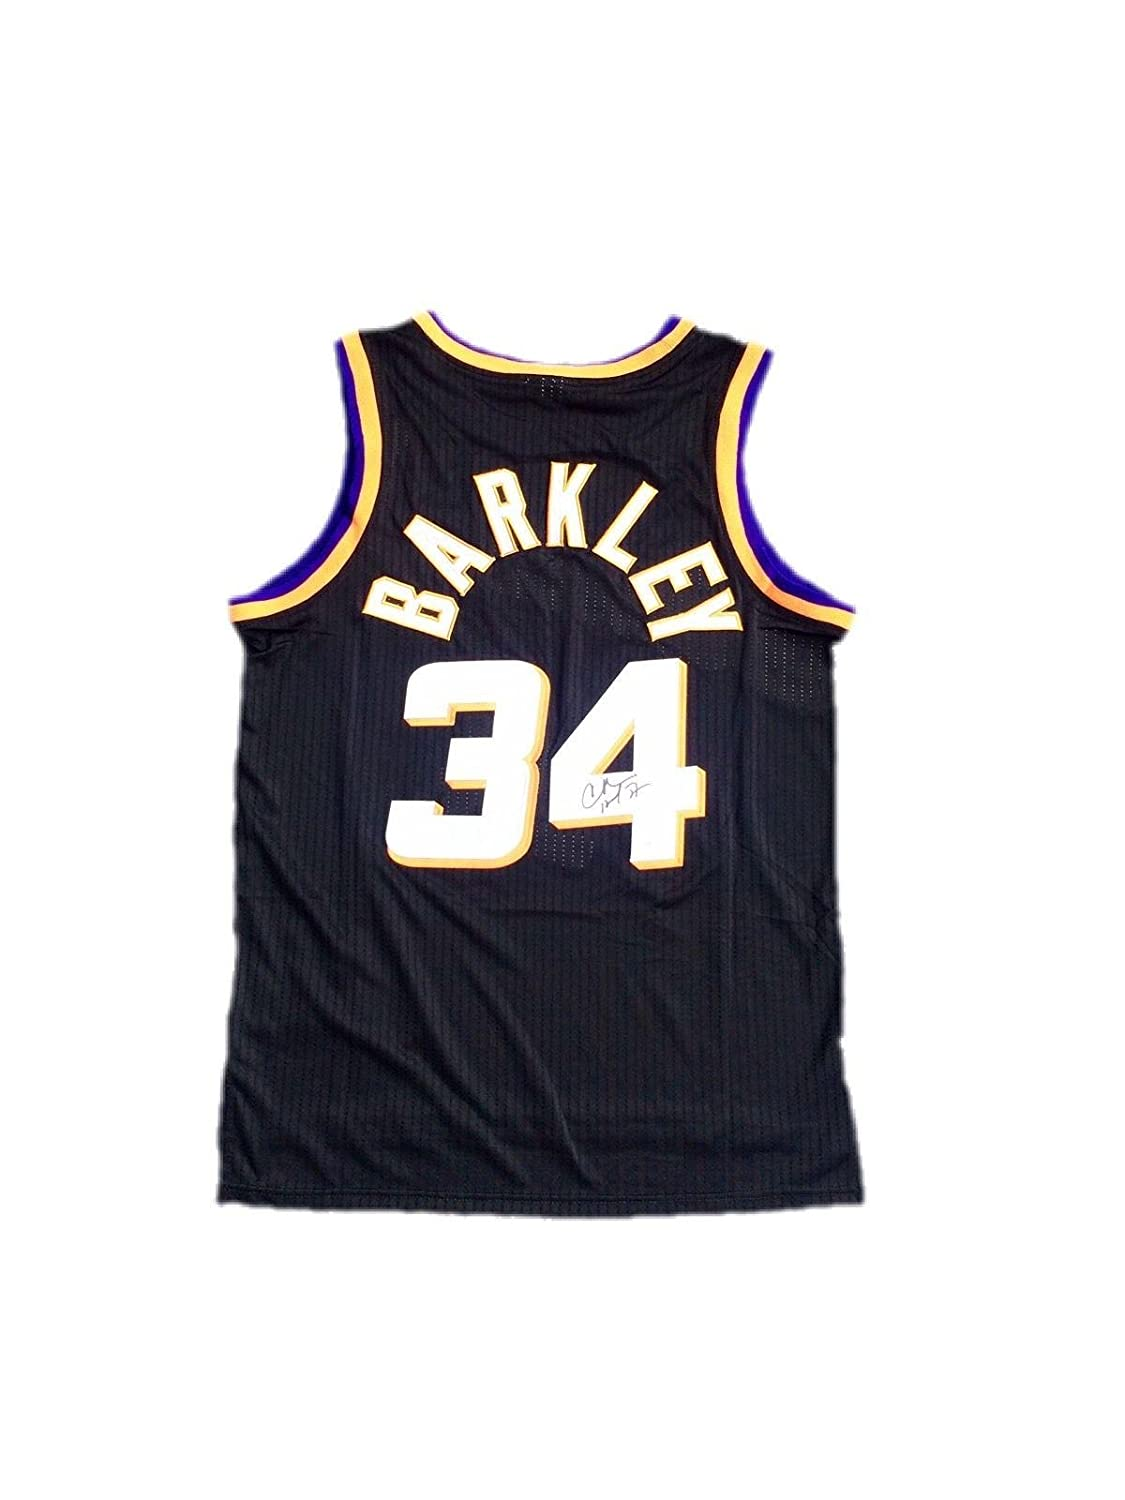 buy online b0329 ef186 Autographed Charles Barkley Jersey - Alternate Black - JSA ...